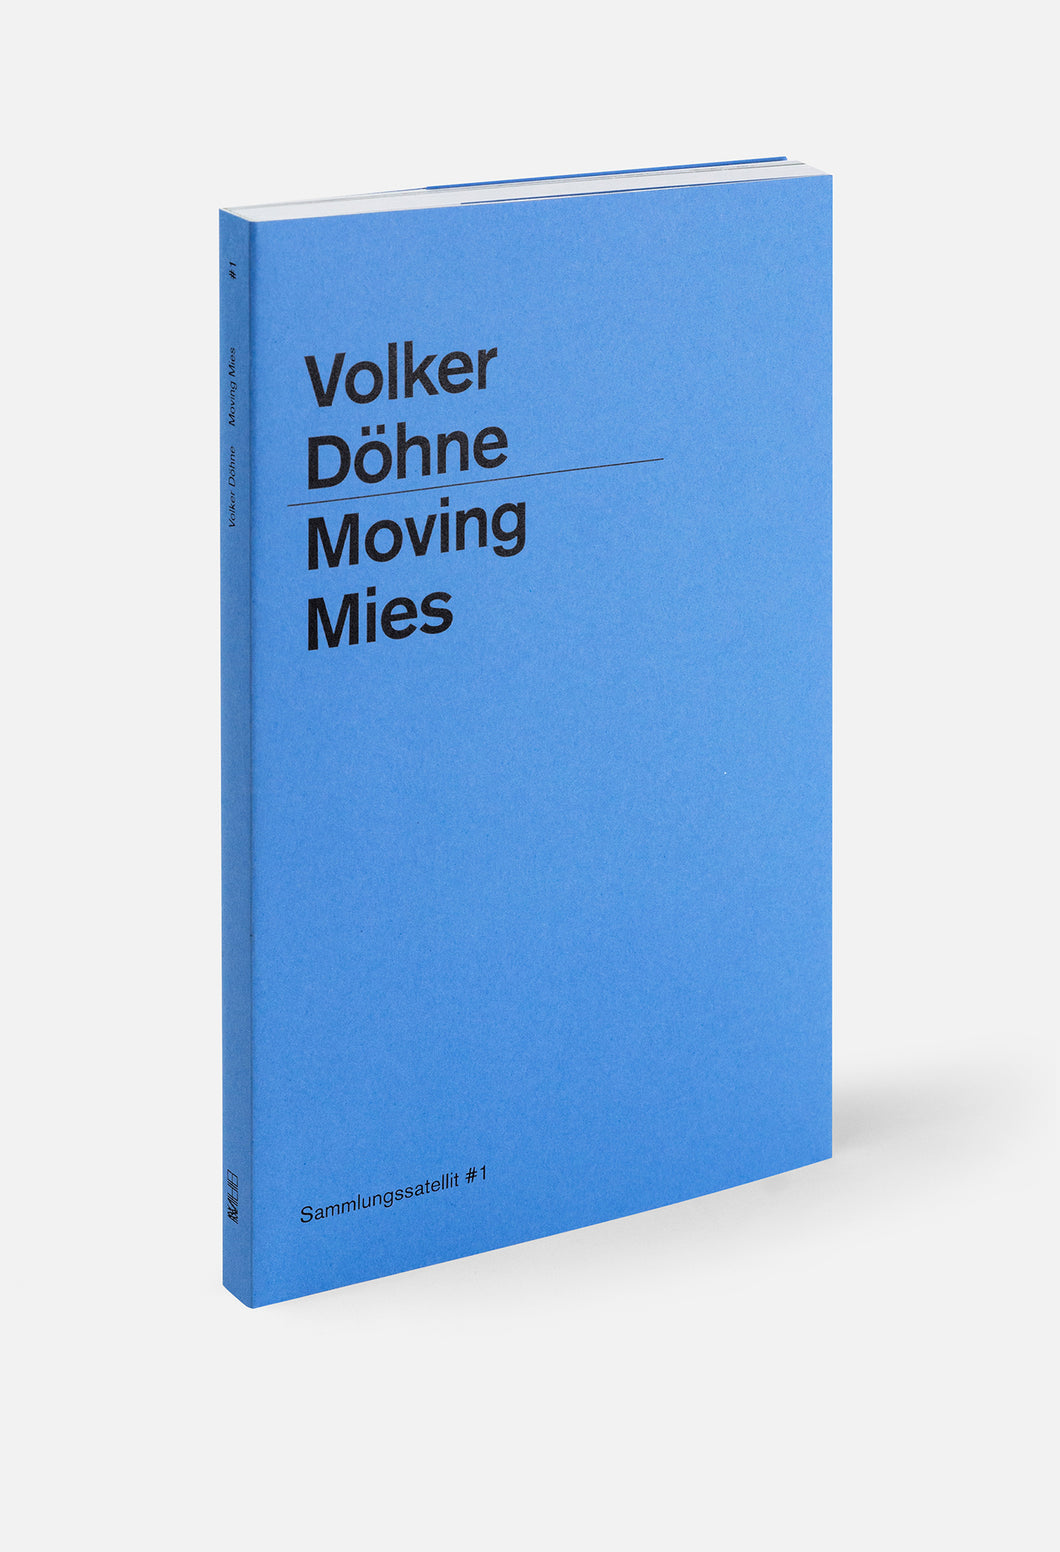 volker döhne – moving mies